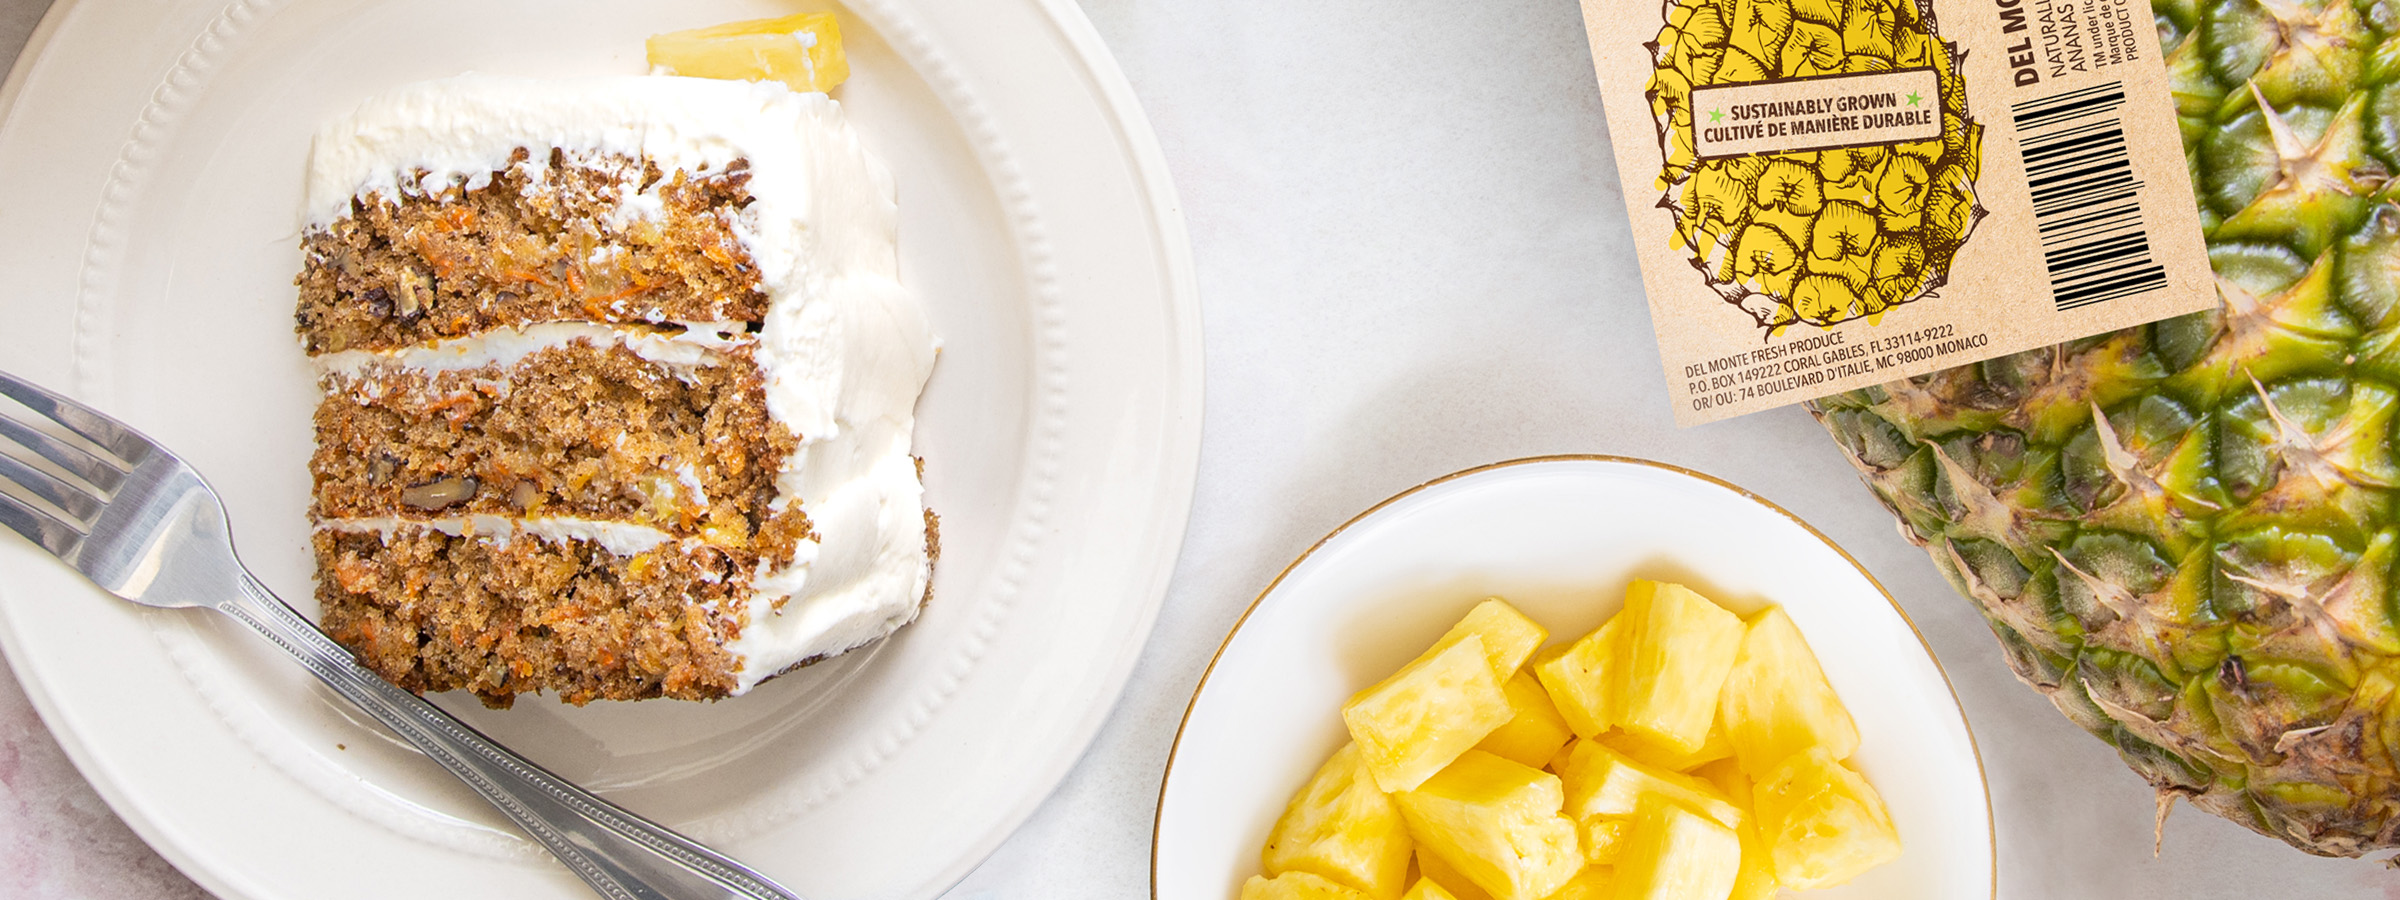 Homepage-Banner_Try-Our-Recipes_Pineapple-Carrot-Cake_April-2020_2